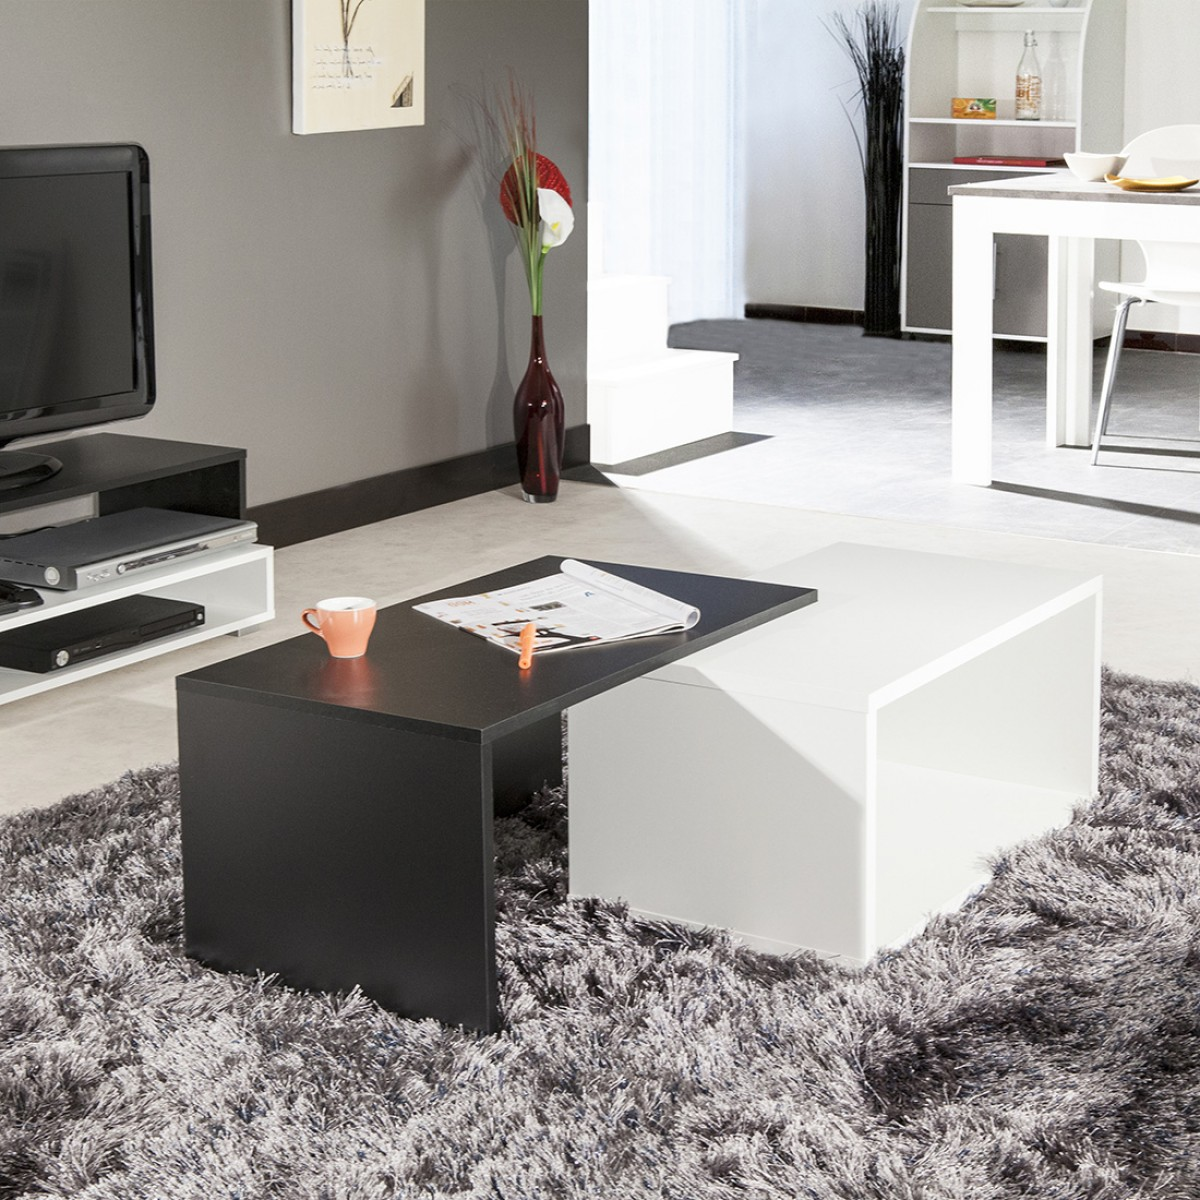 Meuble bas finition ch ne gris 4 portes 1 tiroirs elba for Table basse rubis